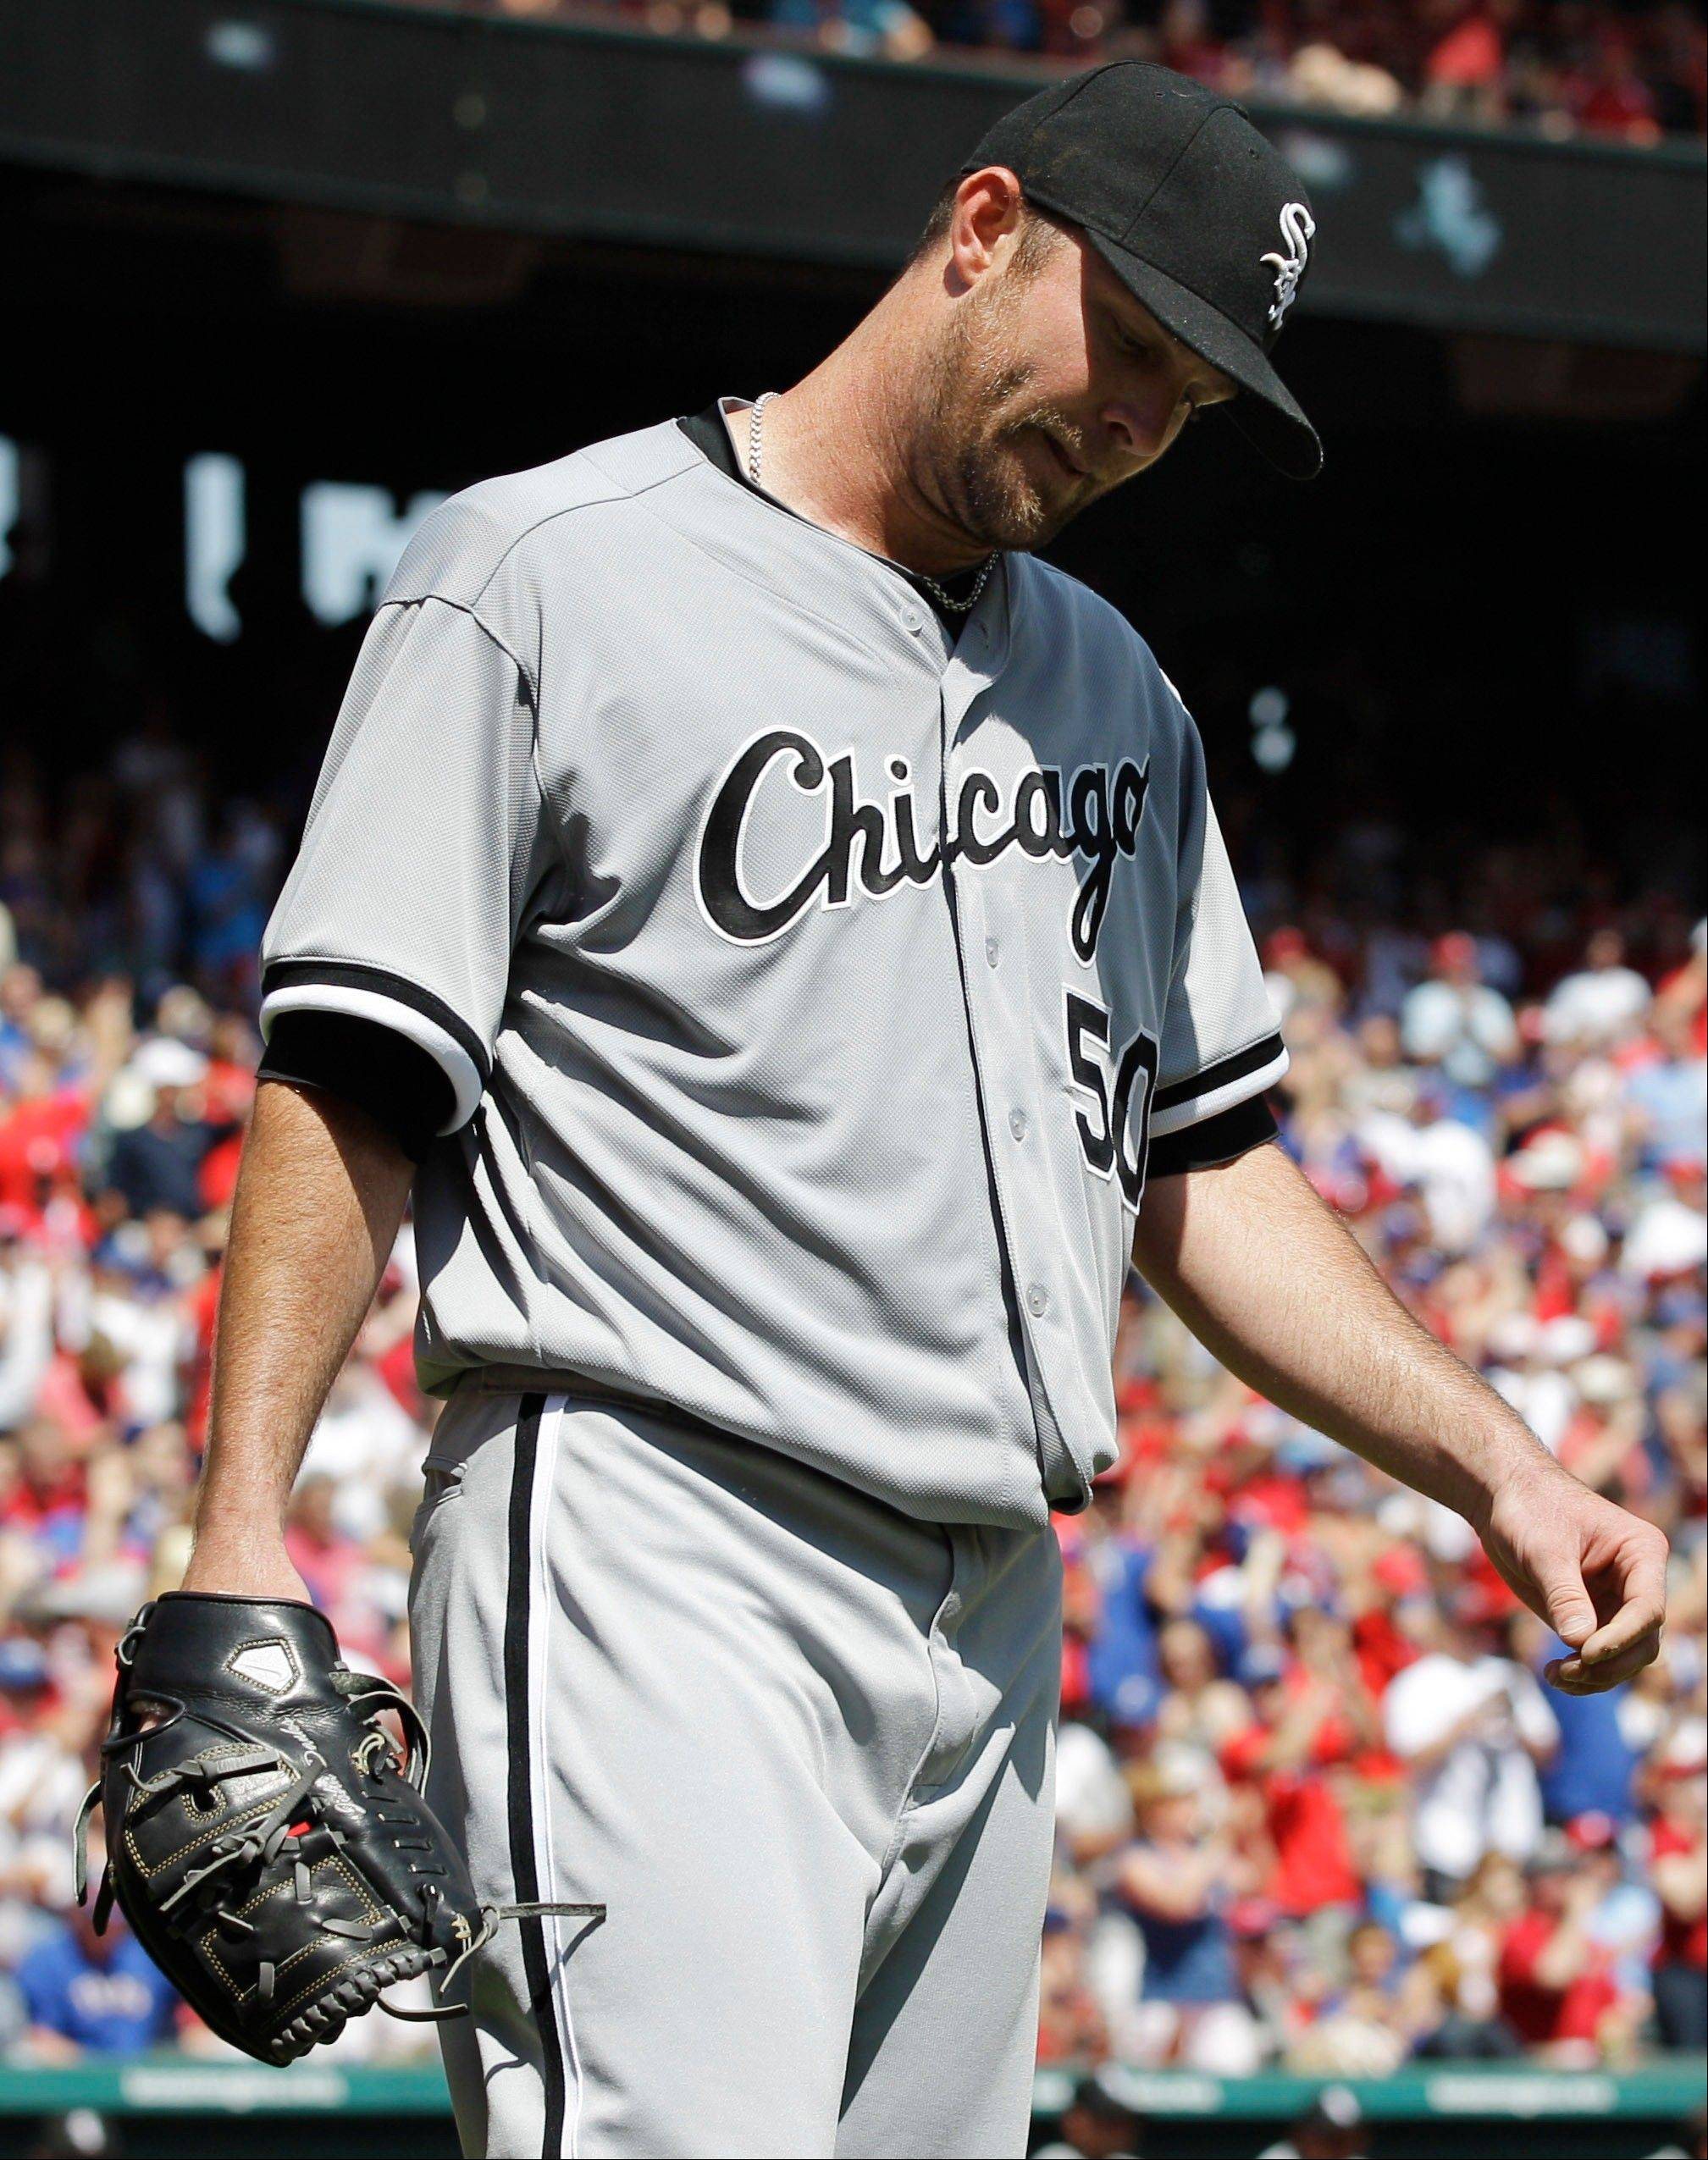 Chicago White Sox starting pitcher John Danks reacts after giving up an RBI-single to Texas Rangers' Michael Young during the sixth inning of a baseball game on Friday, April 6, 2012, in Arlington, Texas.